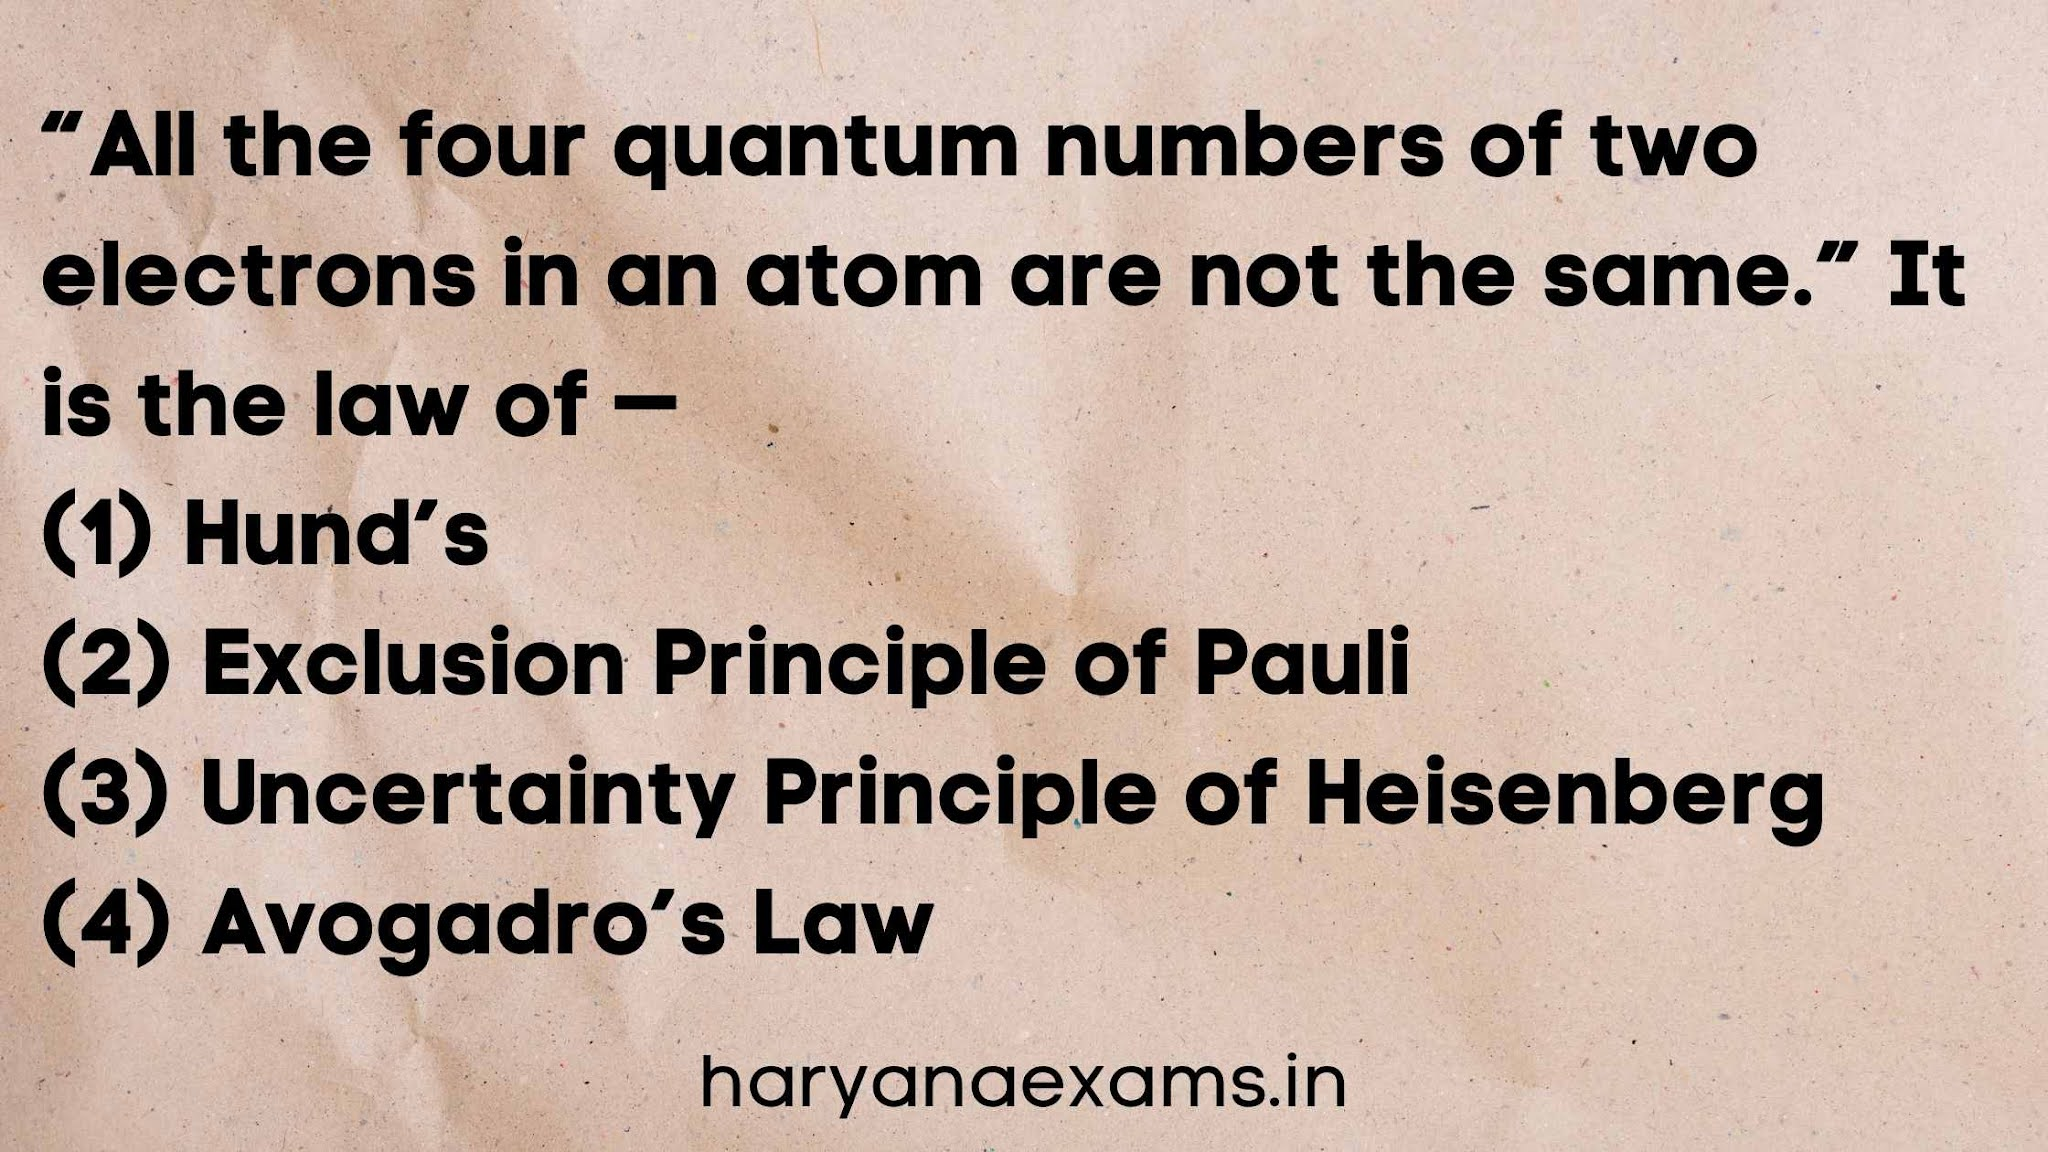 """""""All the four quantum numbers of two electrons in an atom are not the same."""" It is the law of —   (1) Hund's   (2) Exclusion Principle of Pauli   (3) Uncertainty Principle of Heisenberg   (4) Avogadro's Law"""